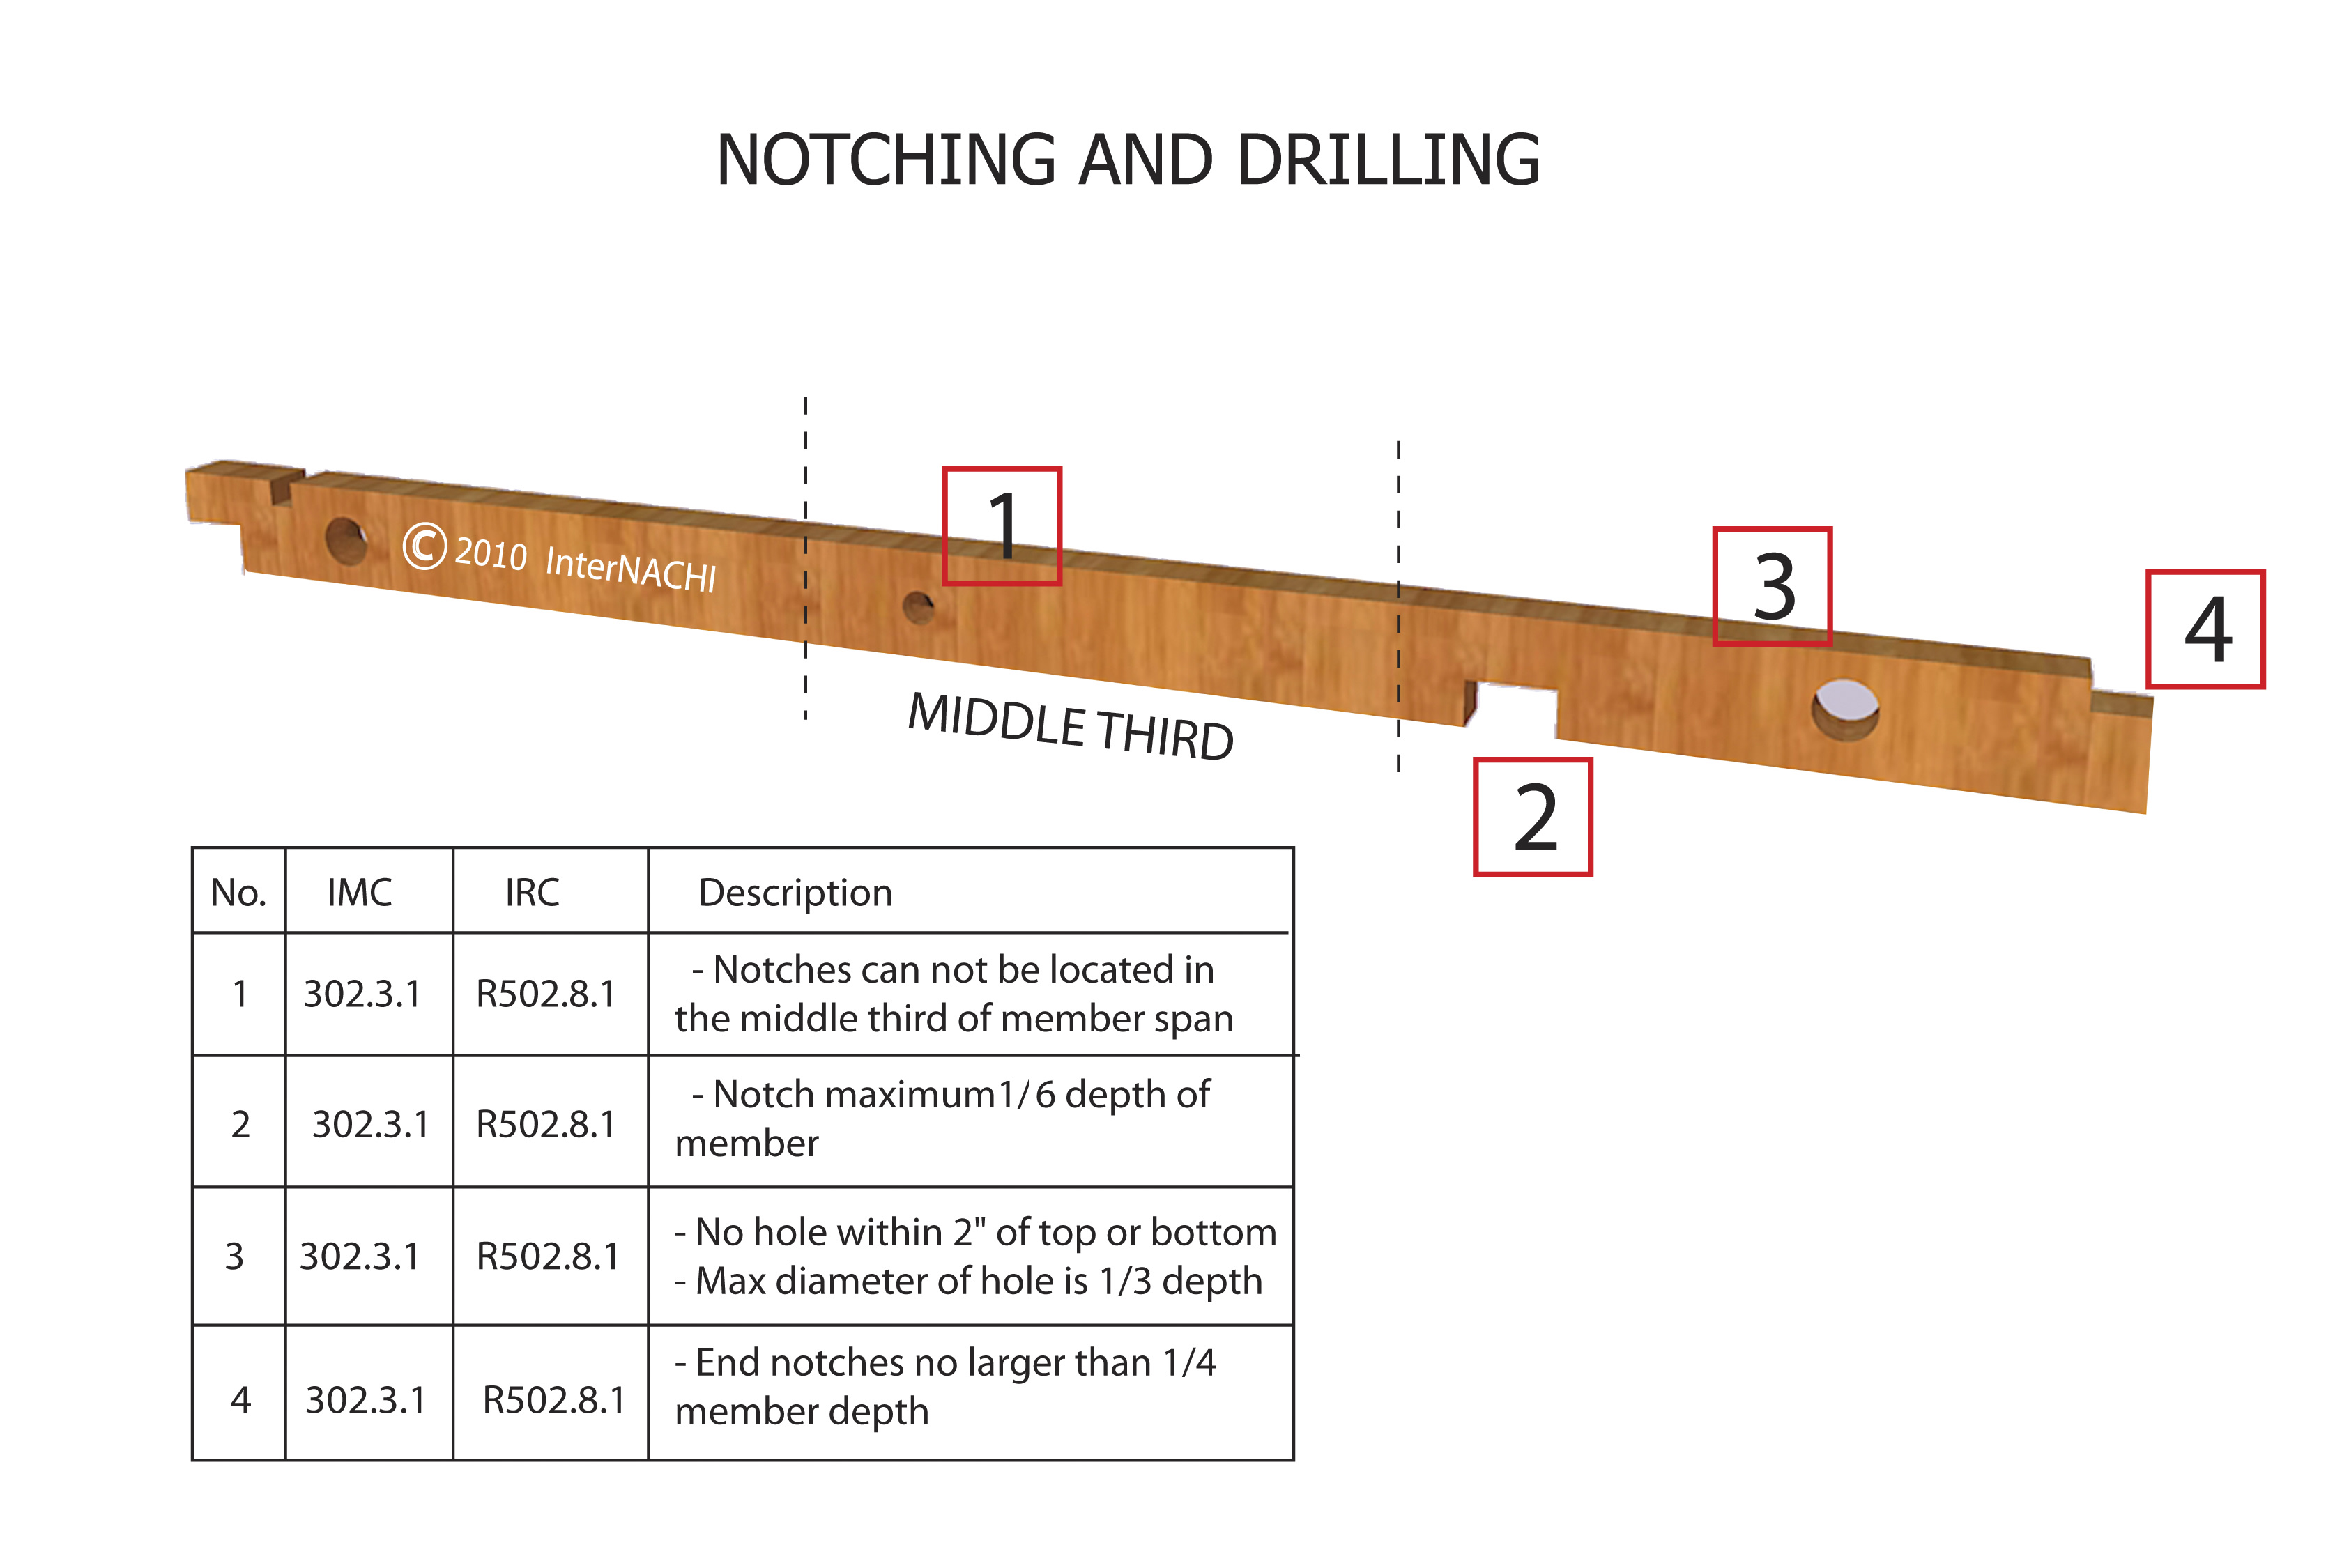 Notching and drilling